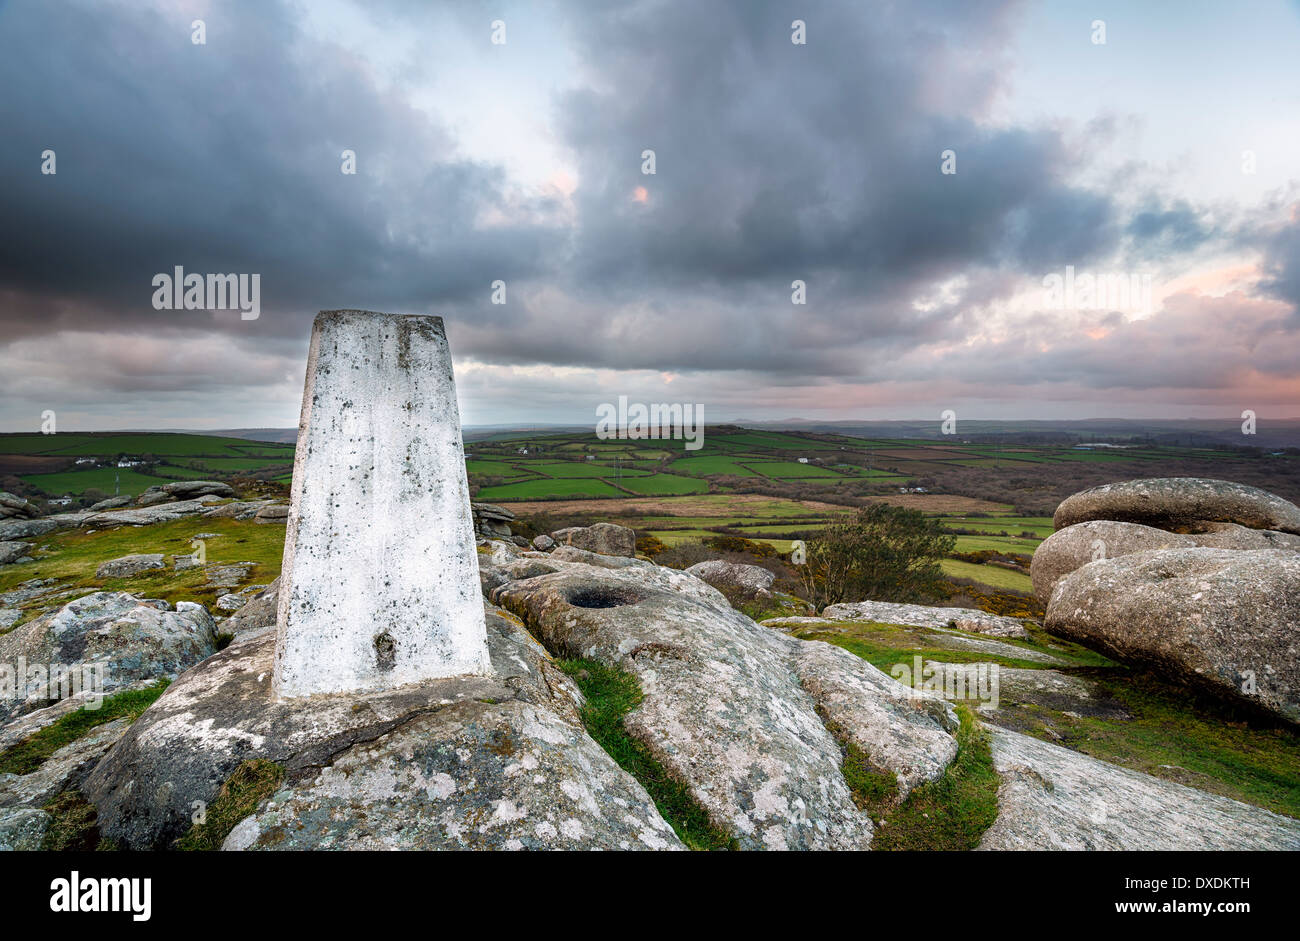 A Trig Point for mappingr triangulation on top of Helman Tor in Cornwall - Stock Image